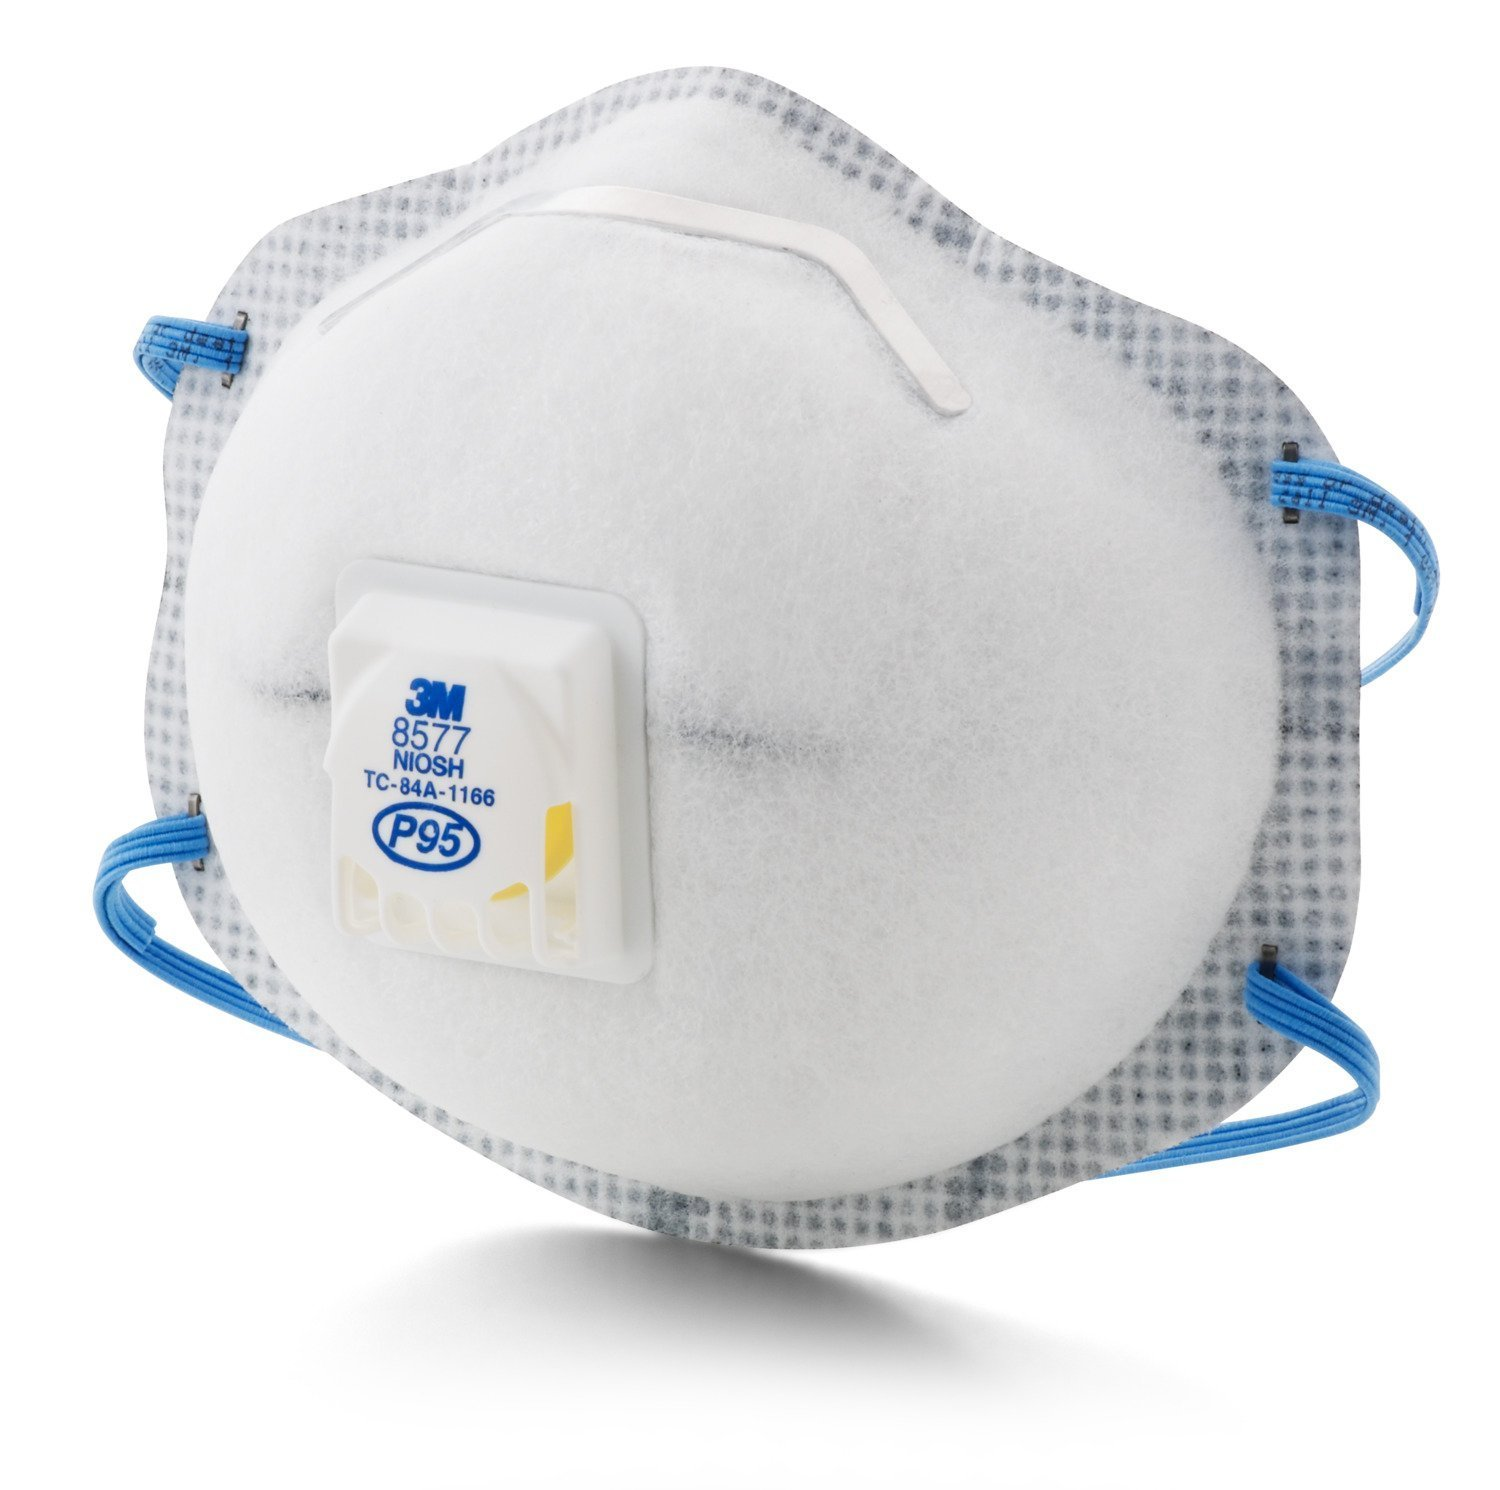 3M 8577 P95 Particulate Respirator with Nuissance Level Organic Vapor Relief (Pack of 60) by 3M (Image #3)